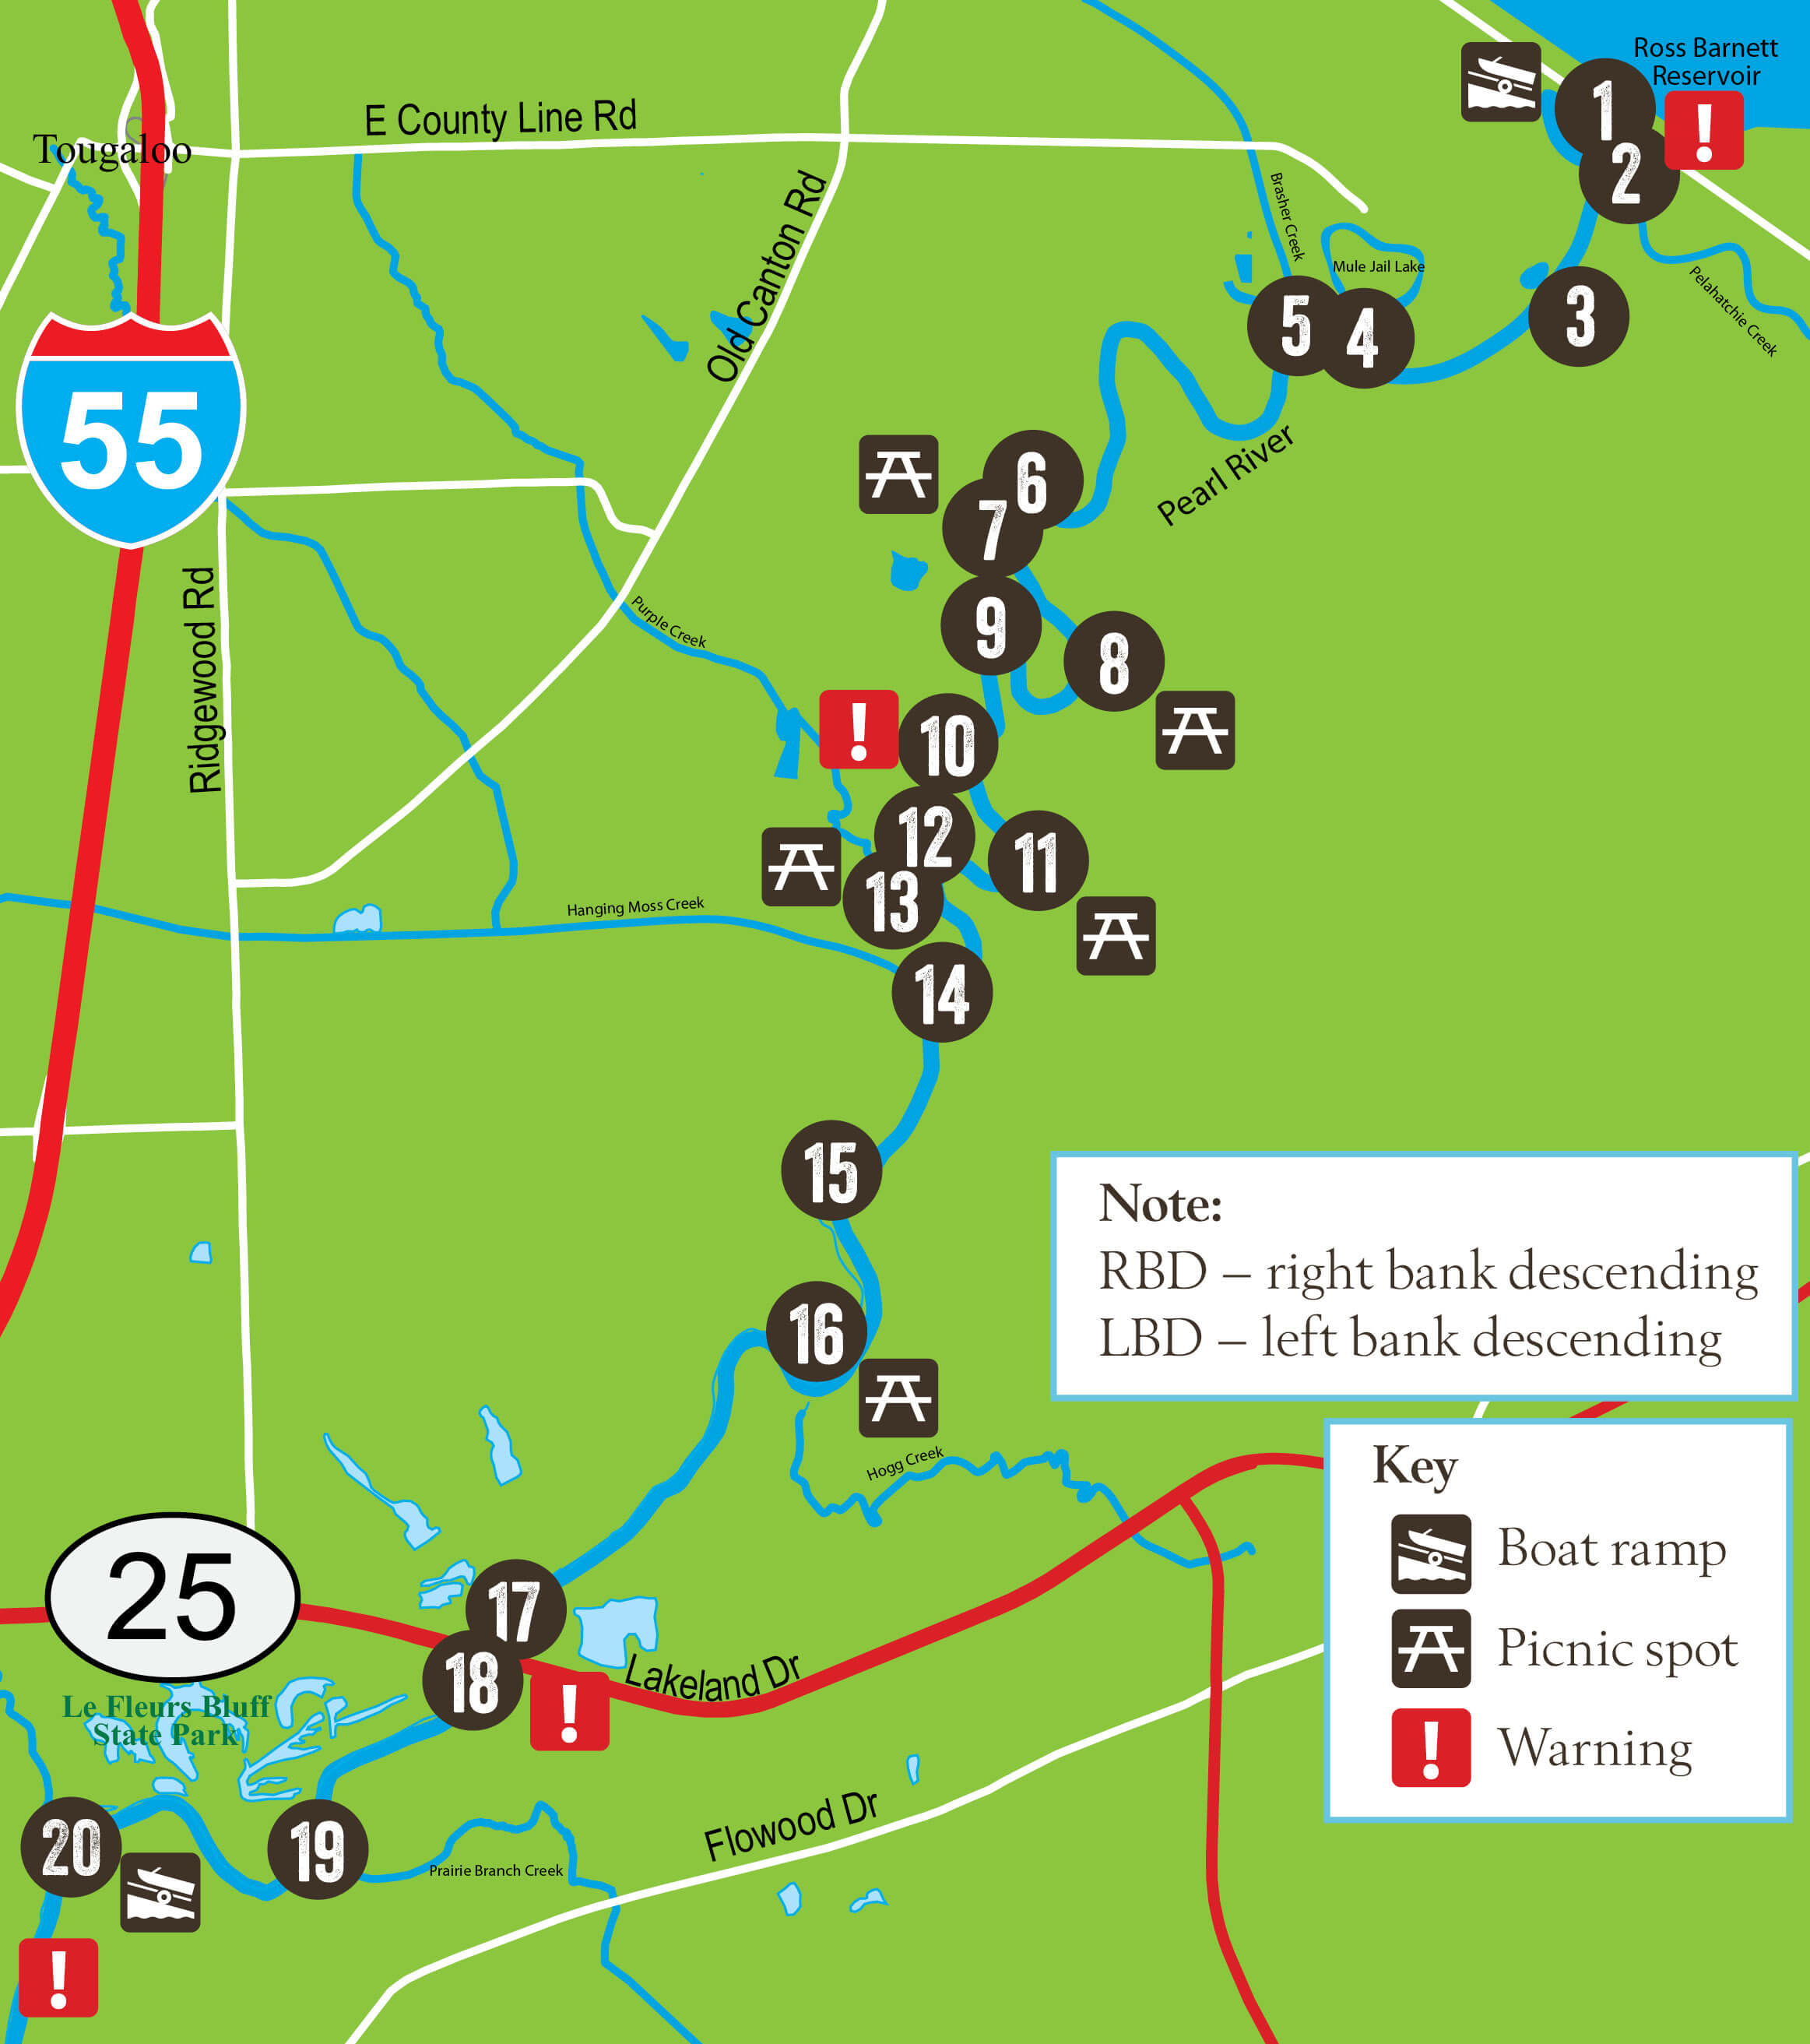 Details for the Pearl River Trail in Mississippi